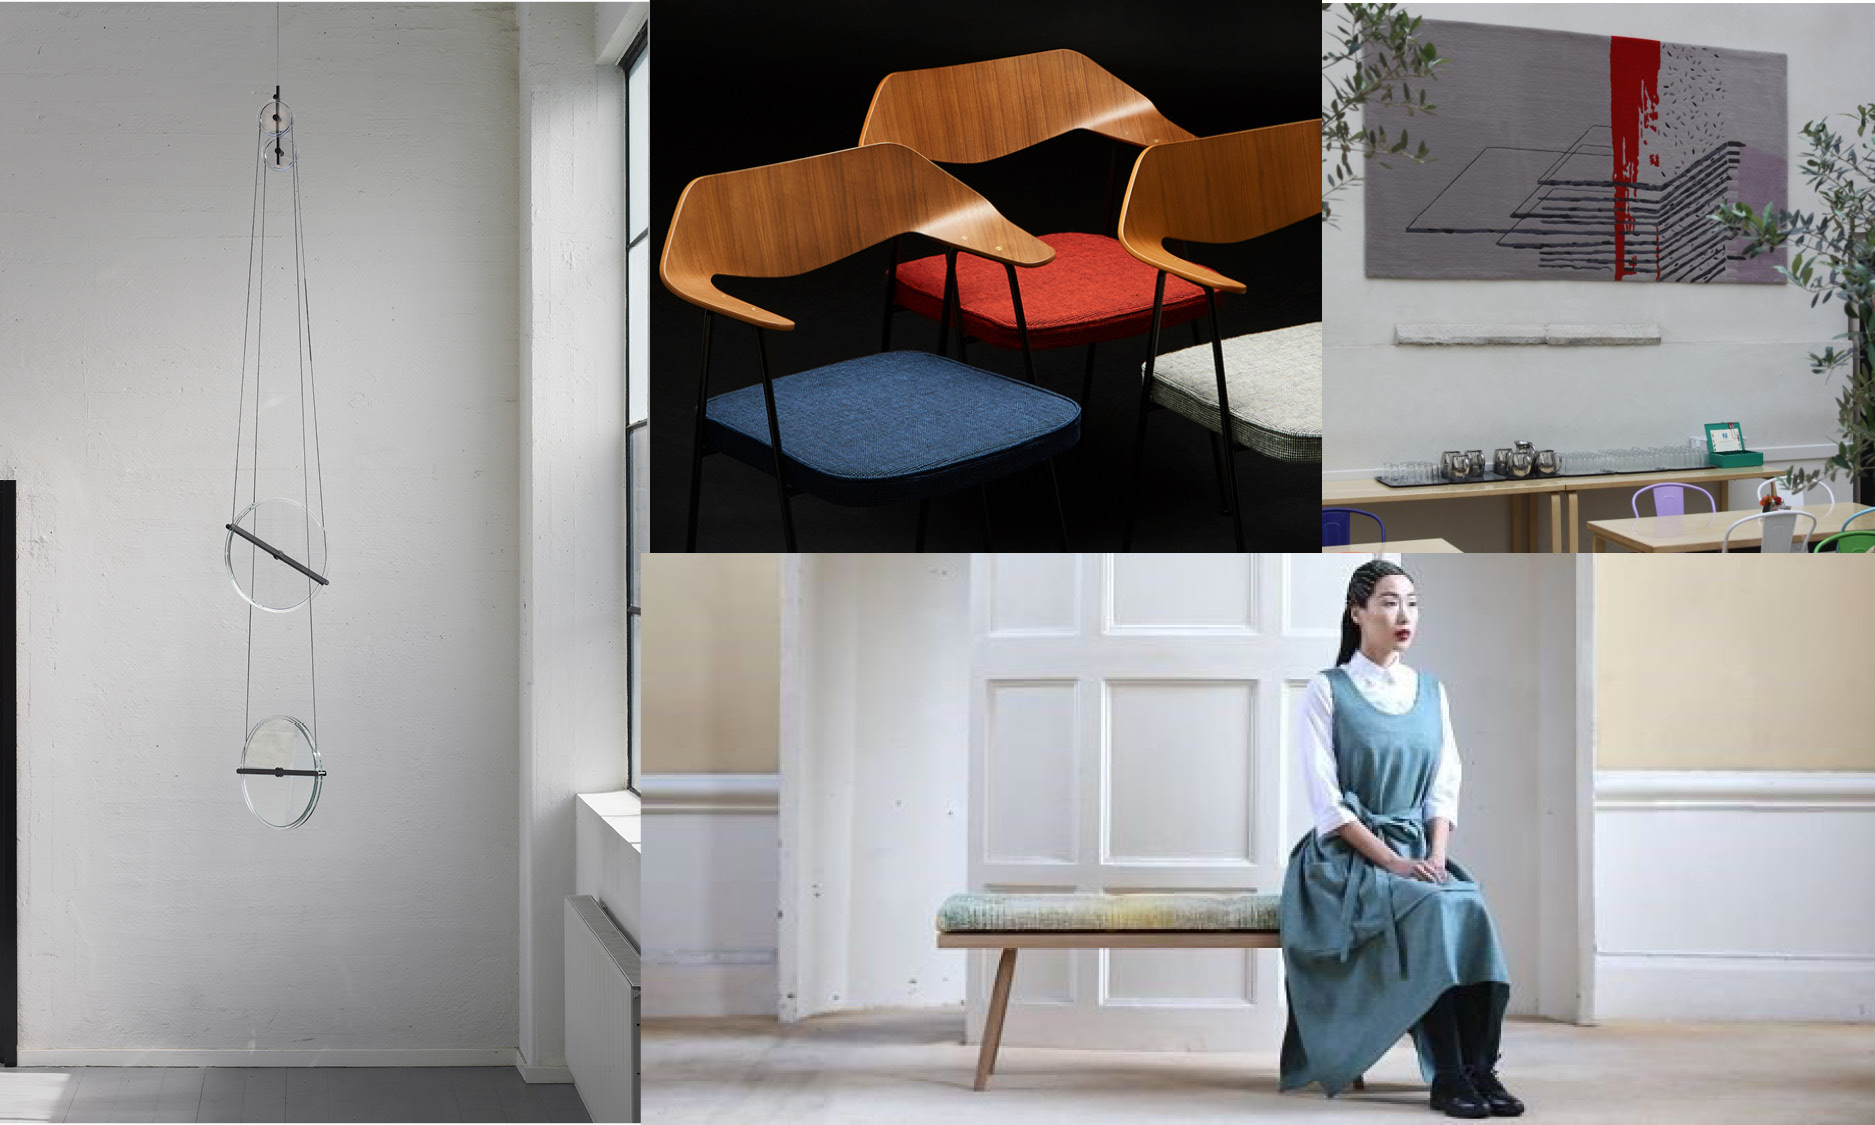 Clockwise from top left: J Hill Standard x Daniel Rybakken Secant Collection, Mourne Textiles x Robin Day 675 Chair for Conran Shop, Ceadogán Rugs x NCAD and Norin O'Brien, Cooper Handmade Furniture x Wild Cocoon.